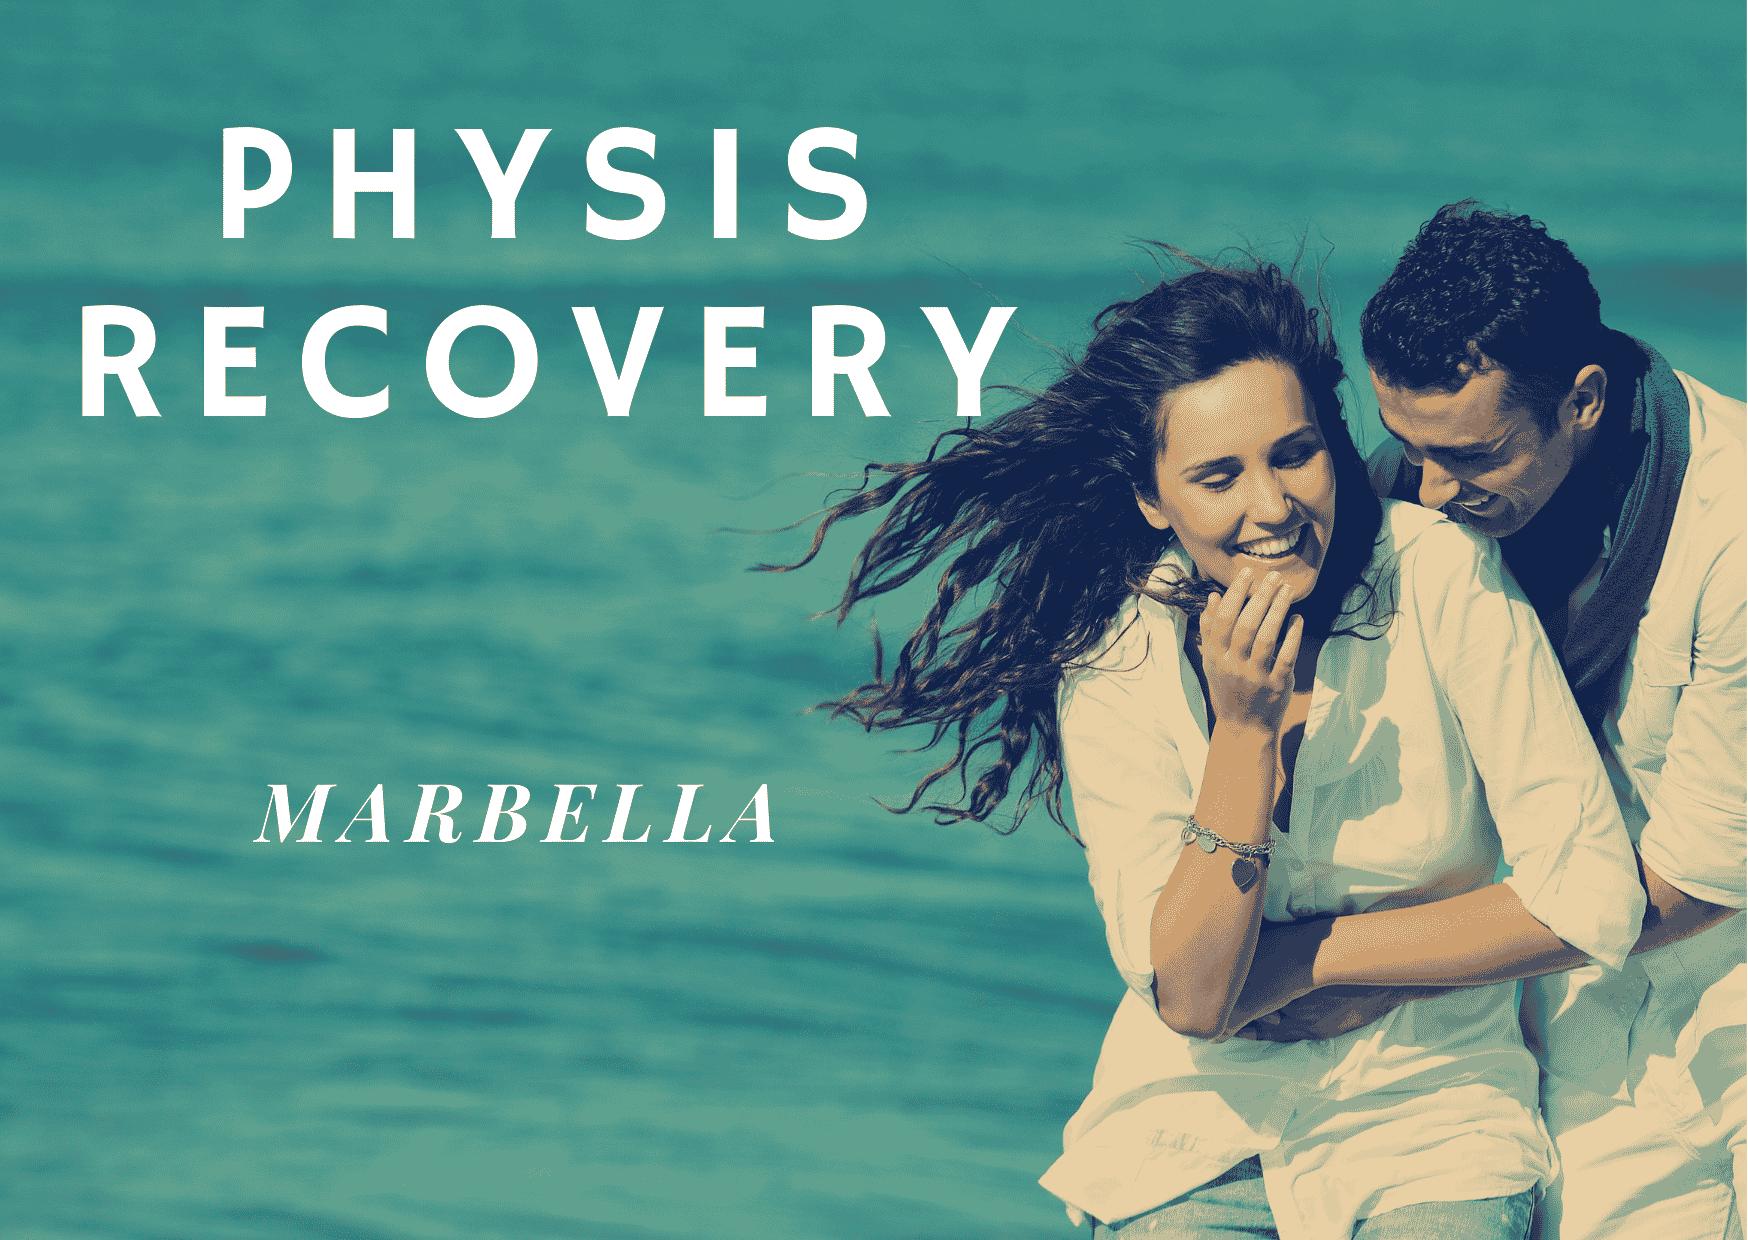 Physis Recovery